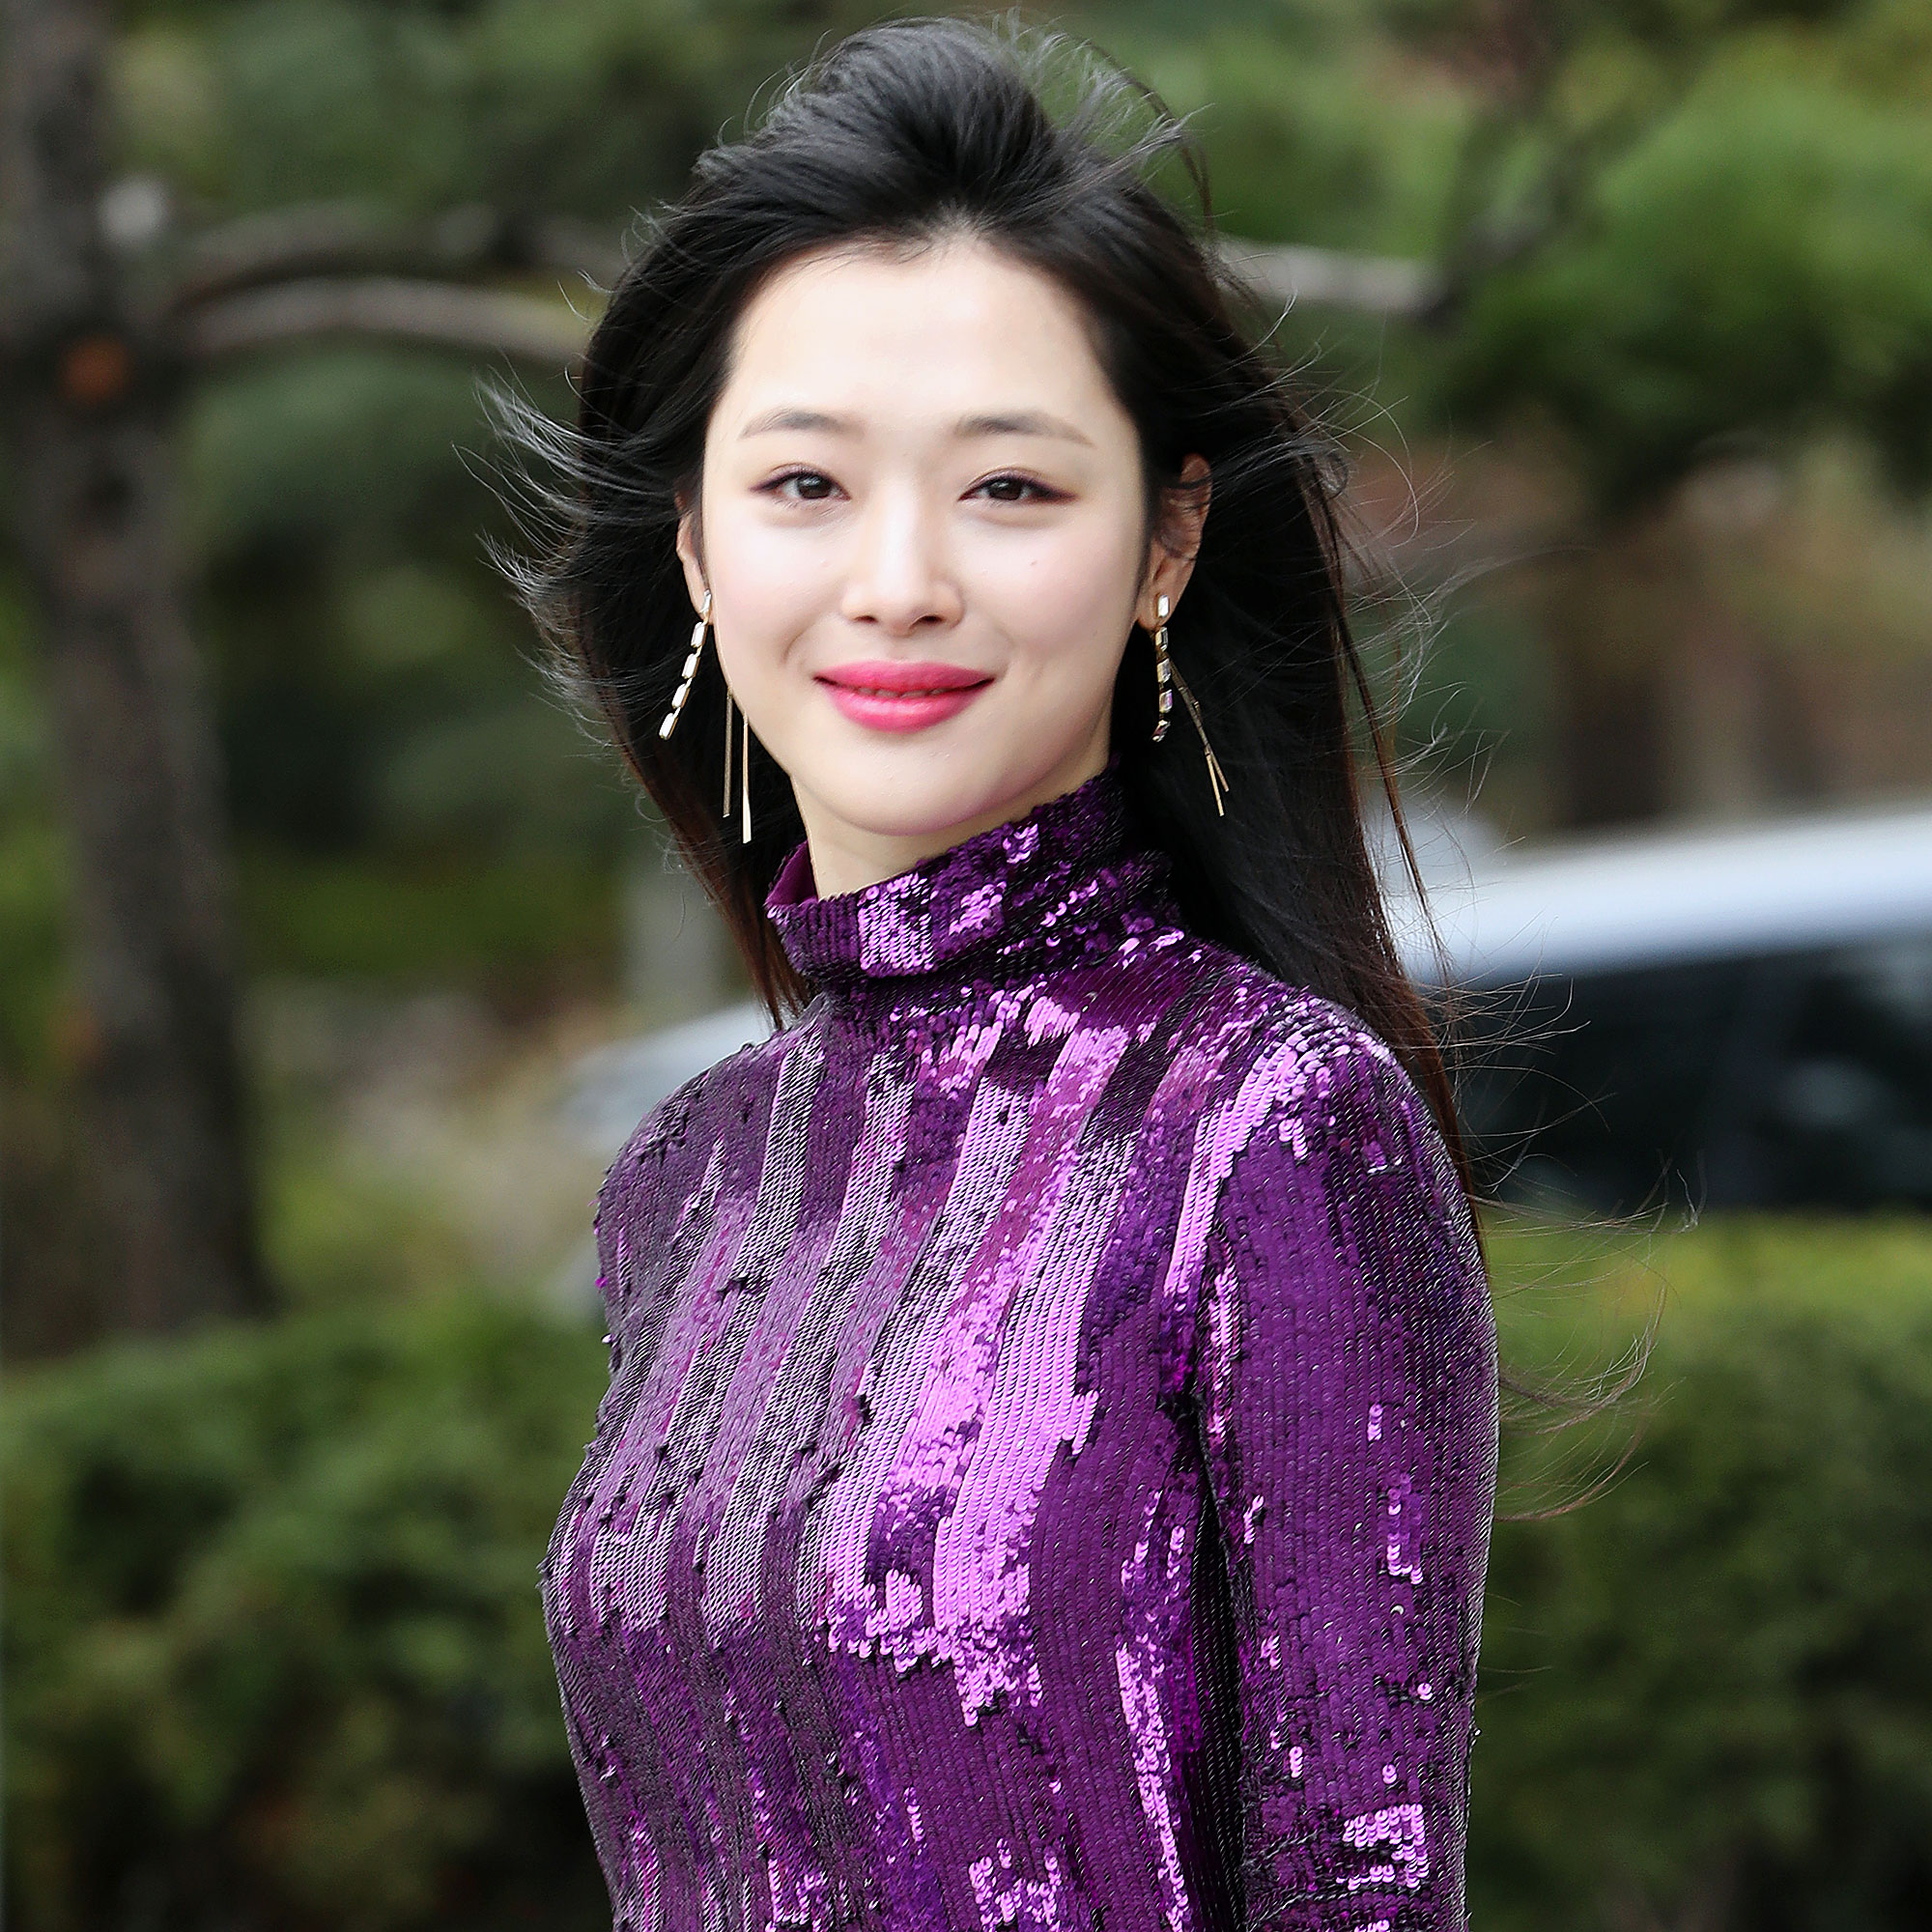 Celebrity Health: K-Pop Star Sulli Dies at 25 in Suspected Suicide